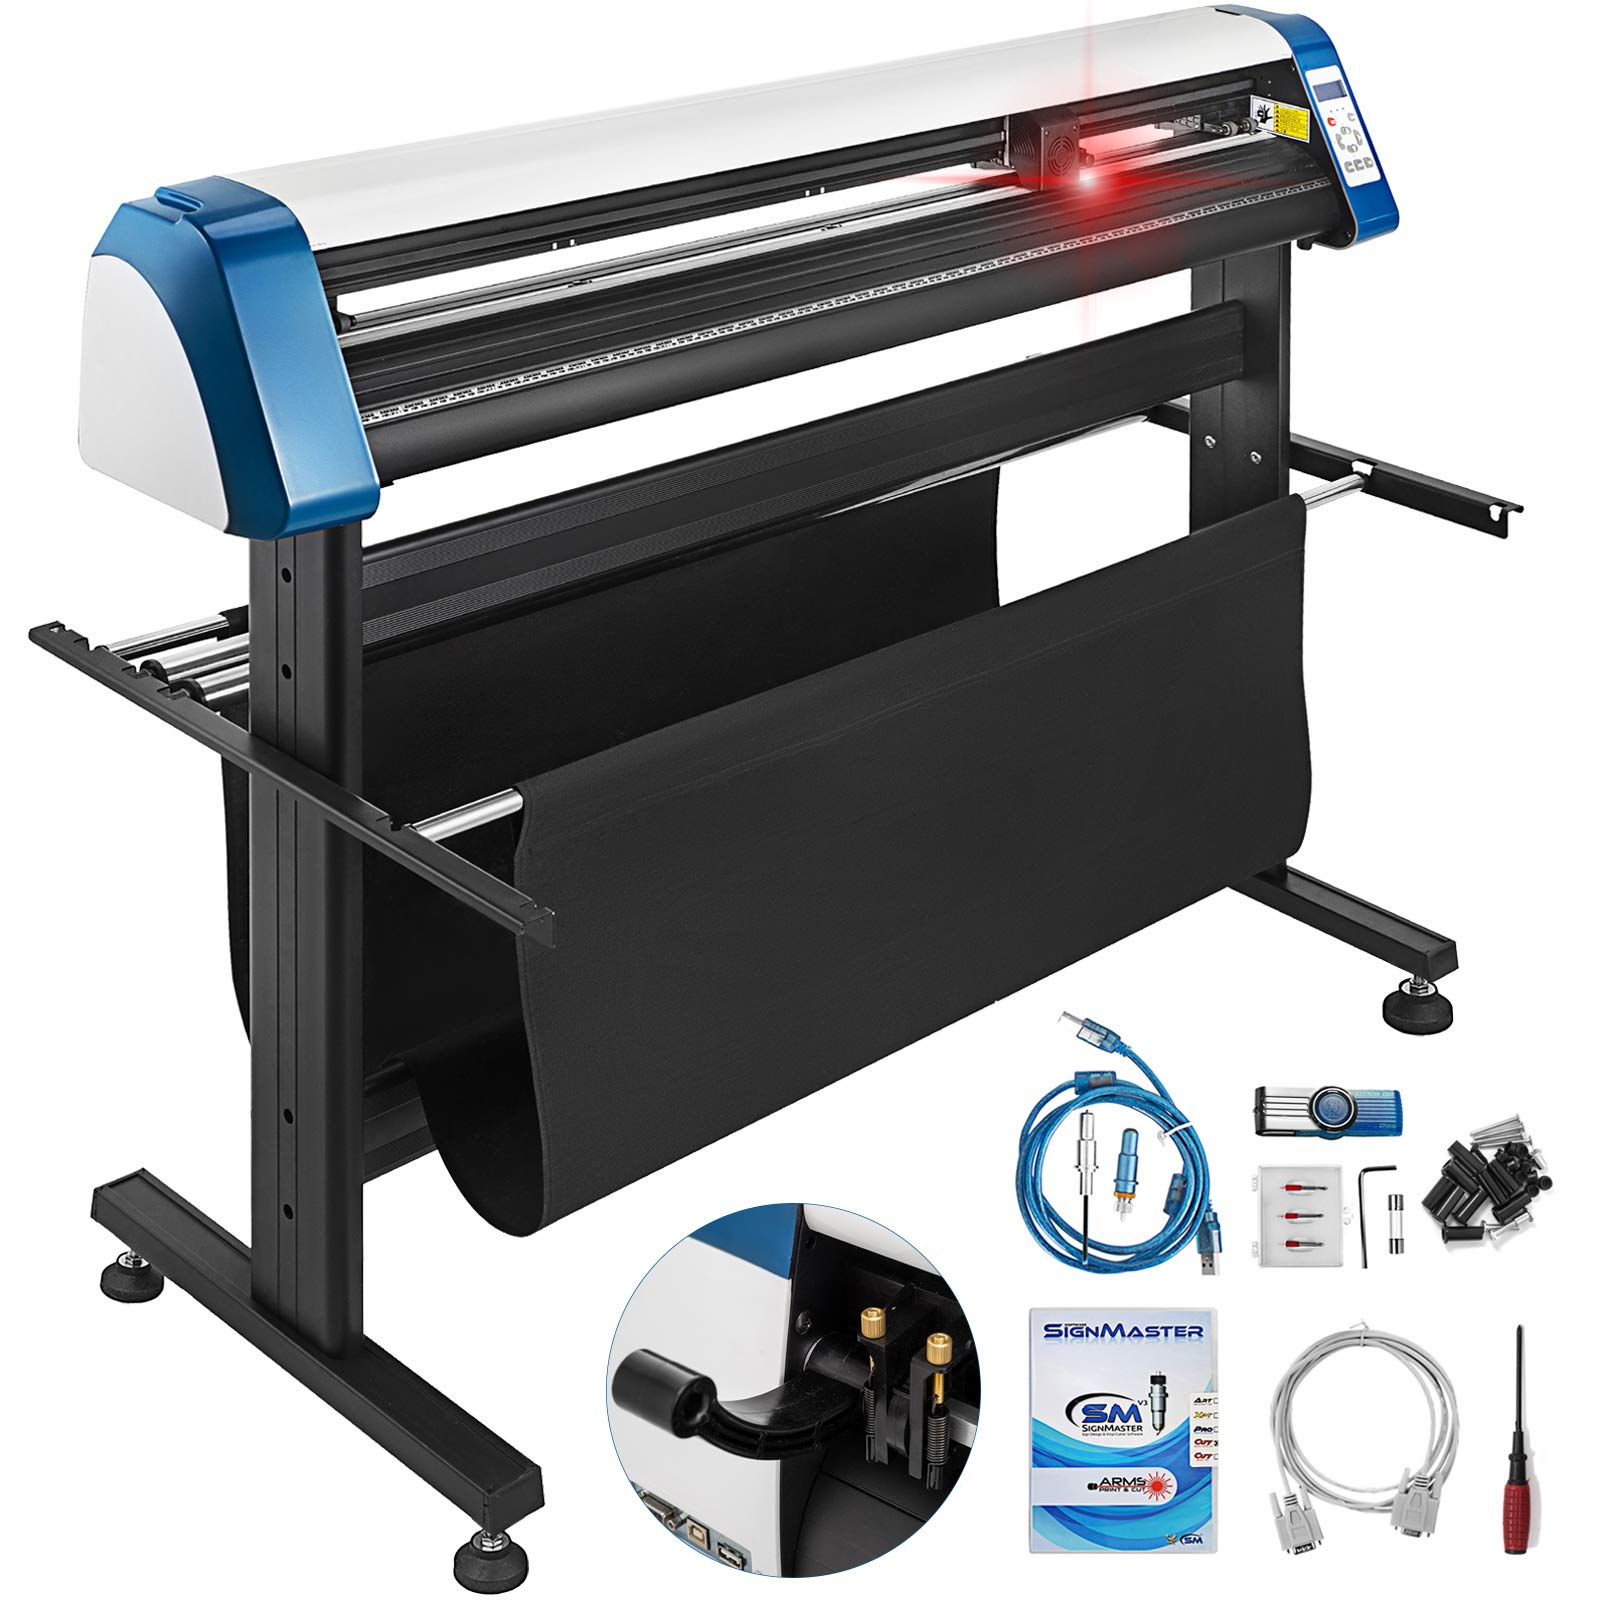 VEVOR Vinyl Cutter 53 Inch Plotter Machine Automatic Paper Feed Vinyl Cutter Plotter Speed Adjustable Sign Cutting with Floor Stand Signmaster Software